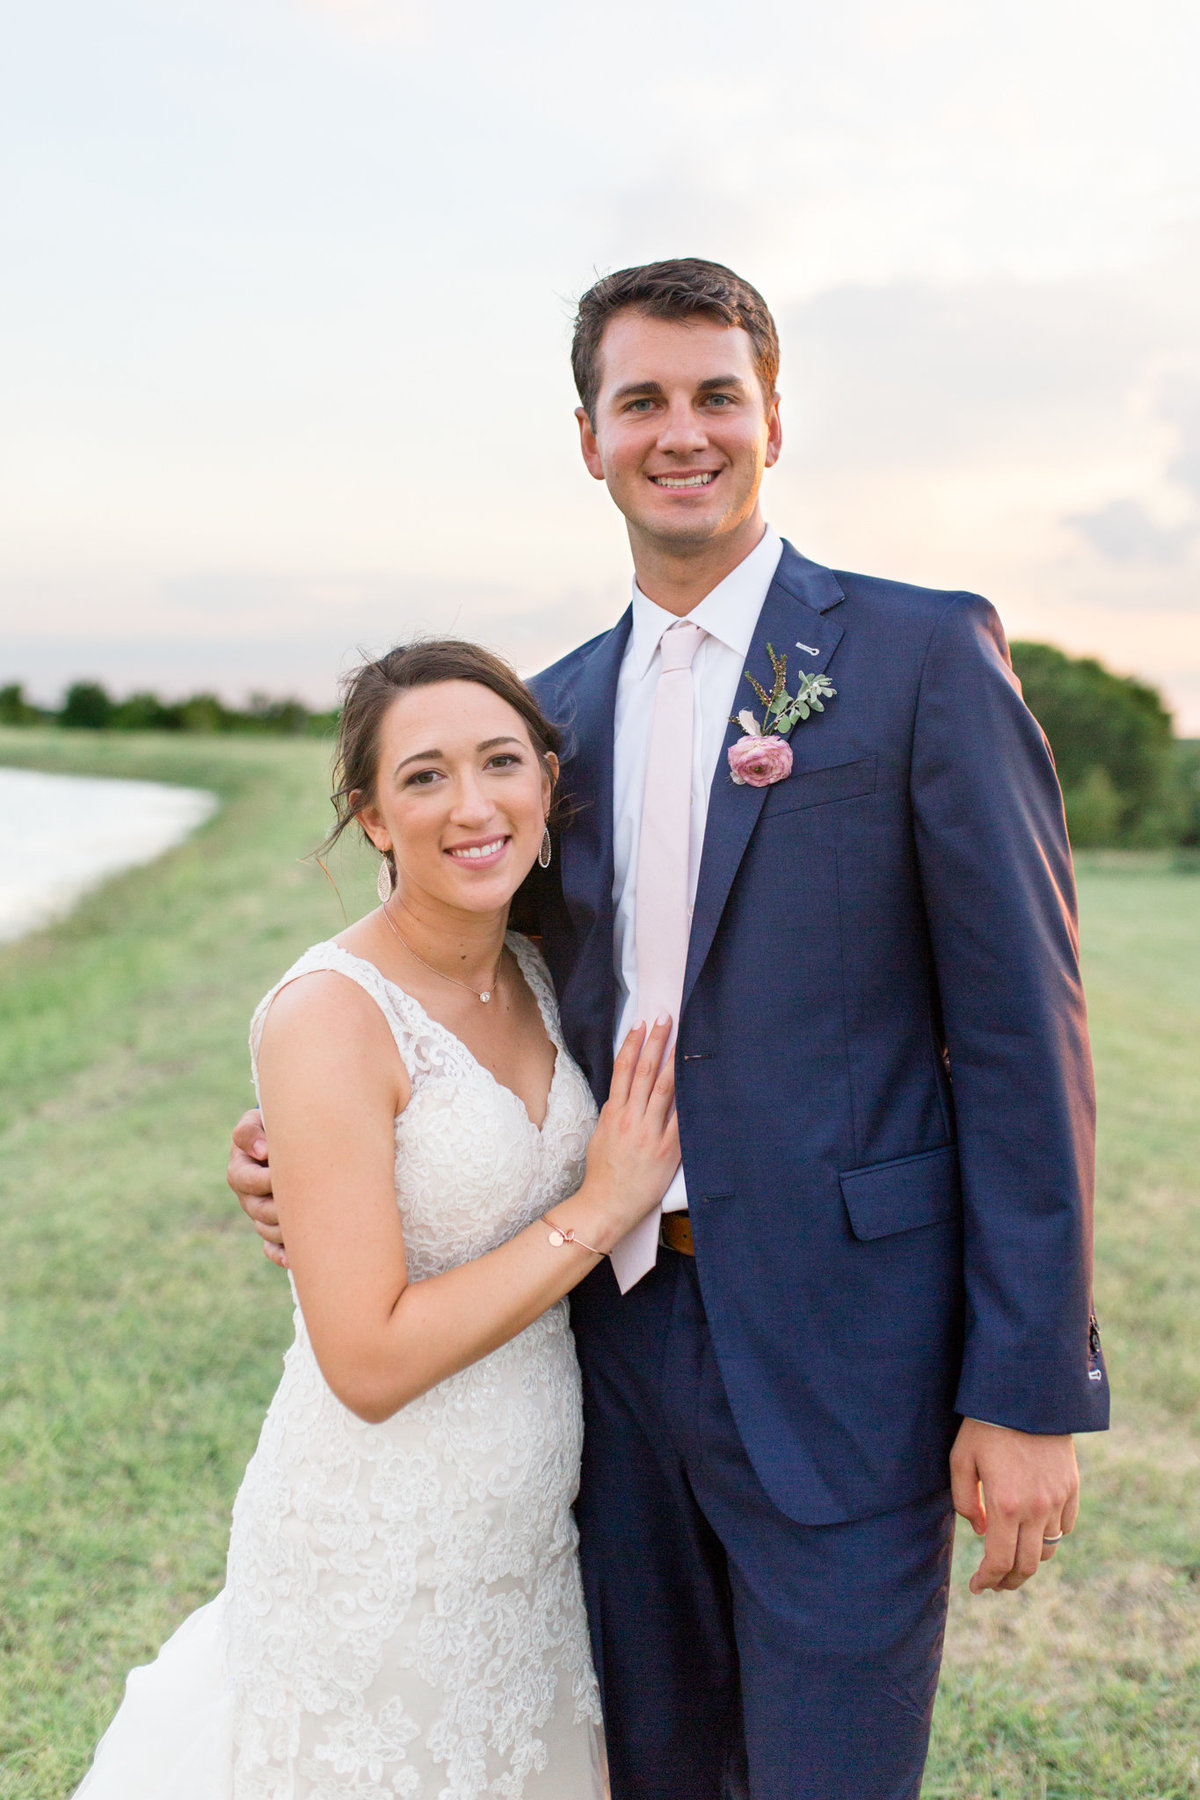 Grand Ivory Wedding| Dallas, Texas | DFW Wedding Photographer | Sami Kathryn Photography-122